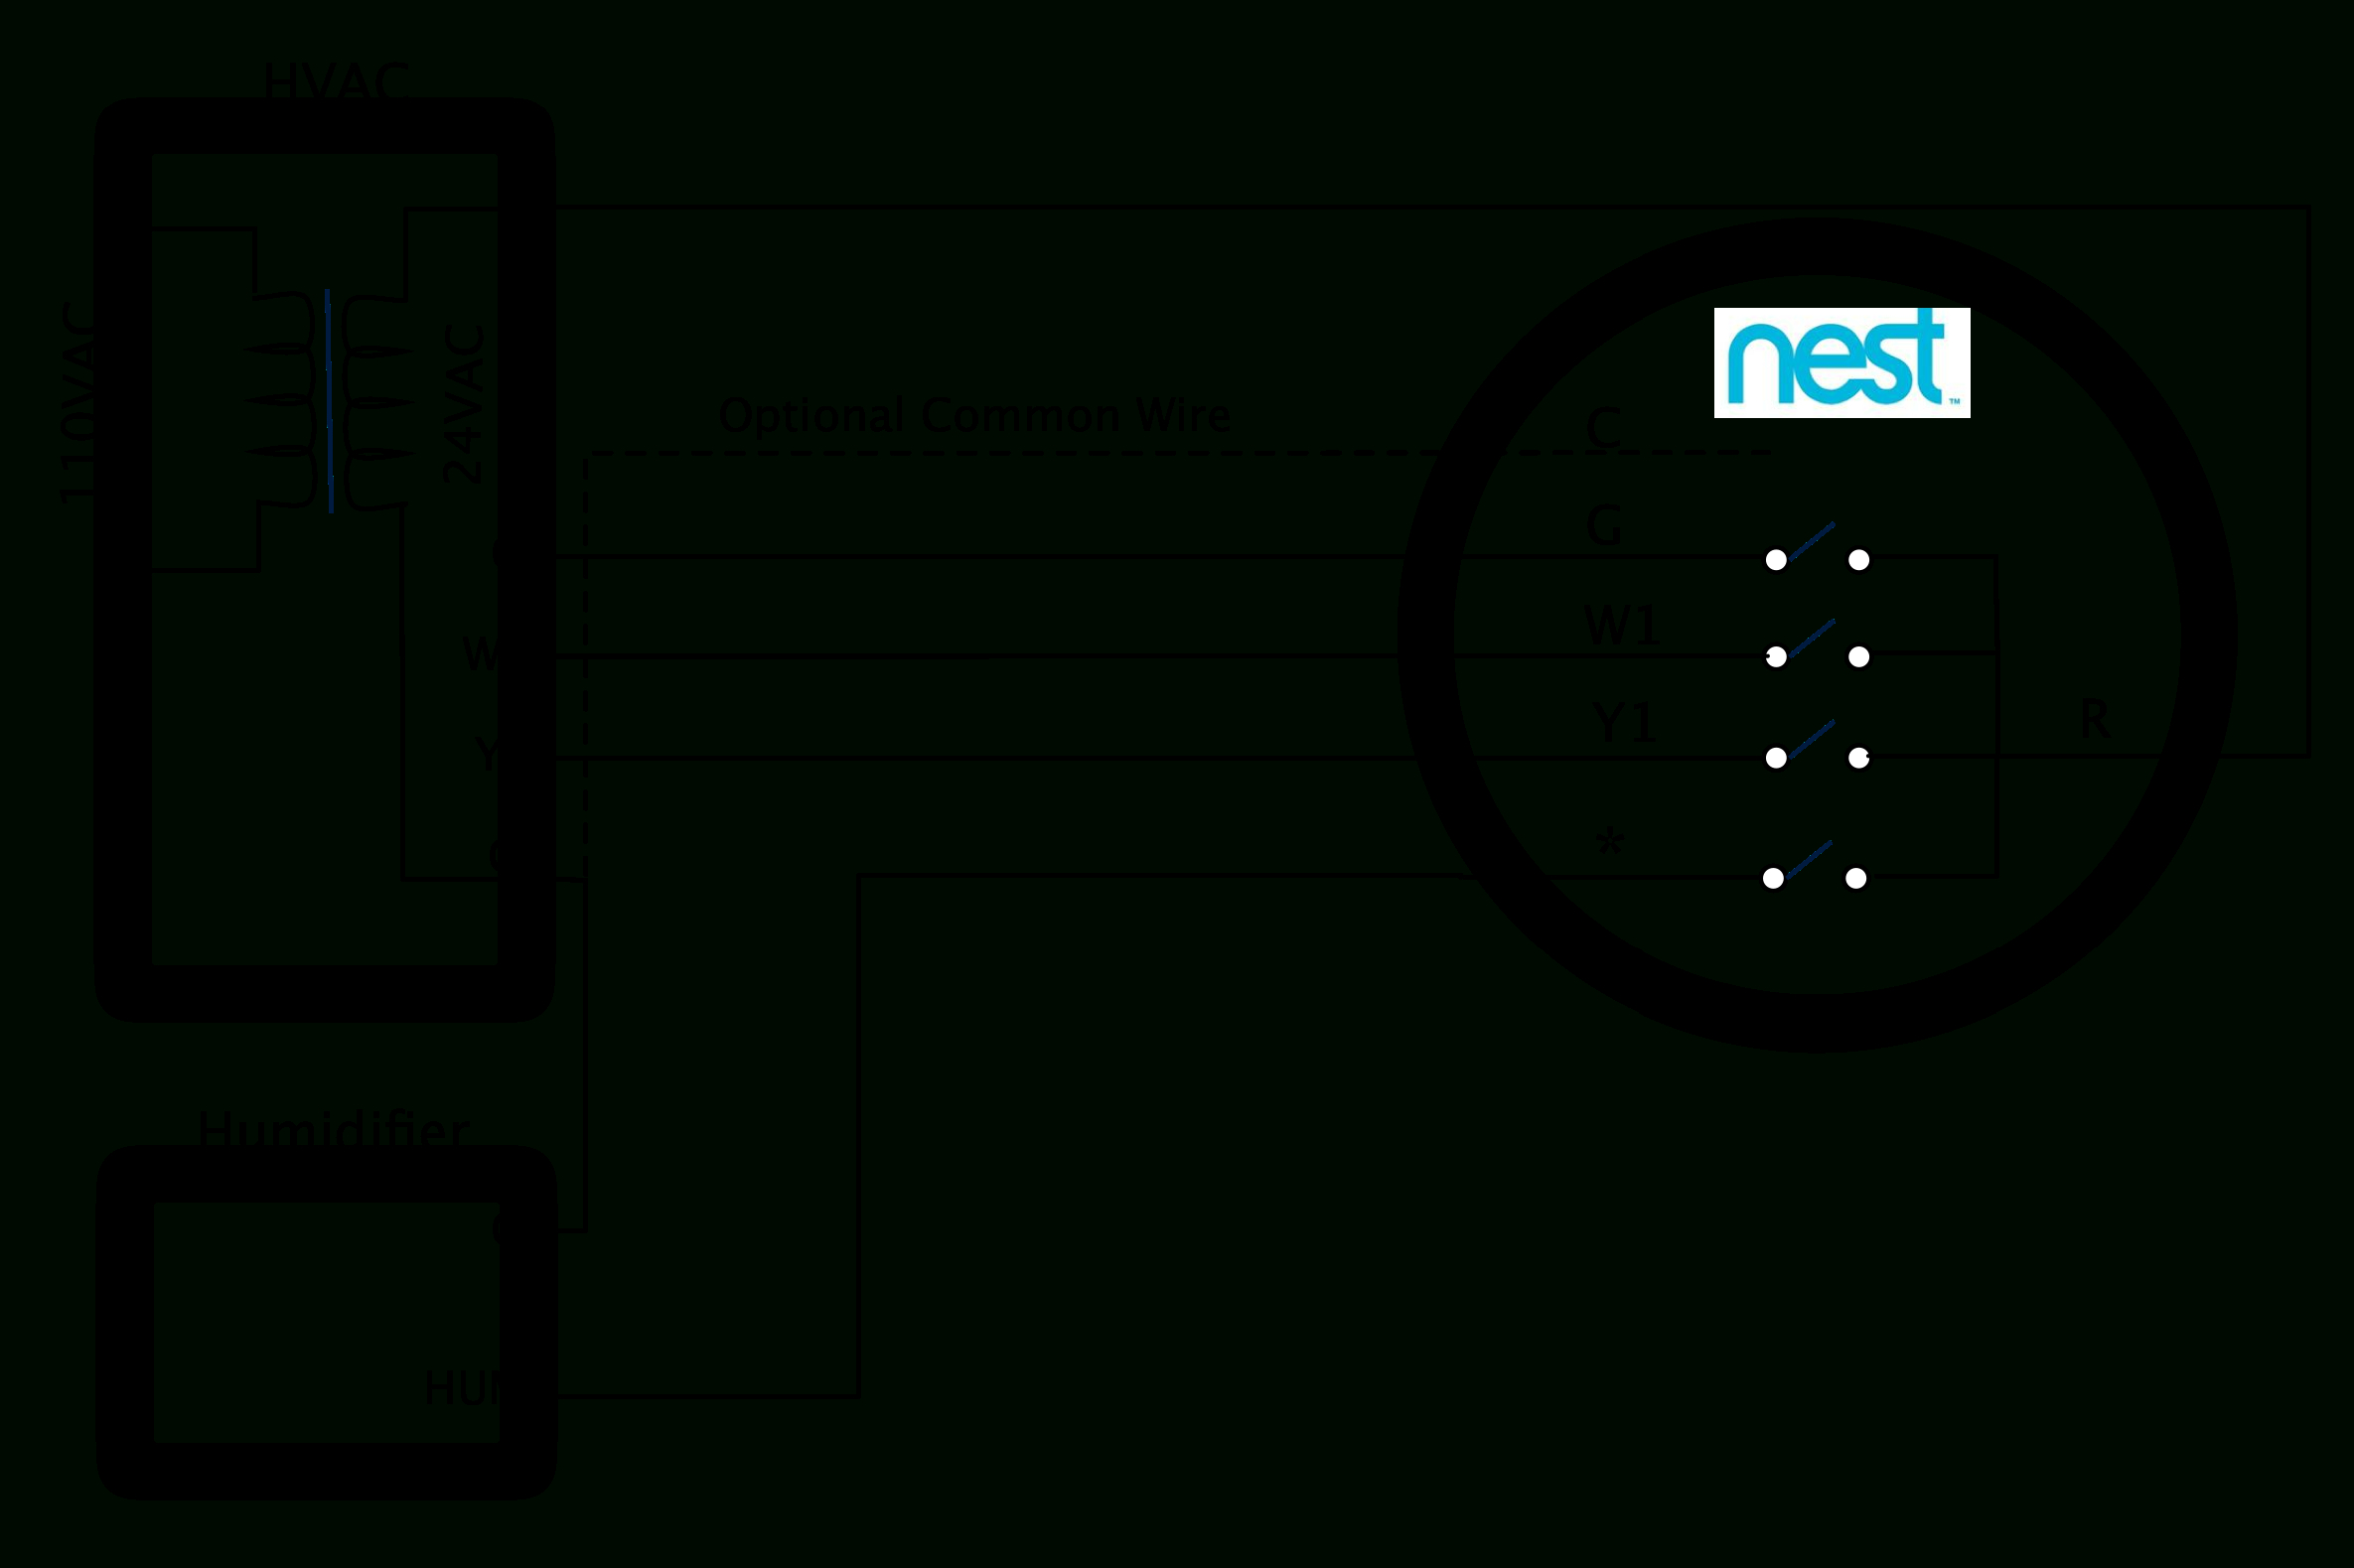 Nest Learning Thermostat Advanced Installation And Setup Help For - What Is The Asterisk On The Nest Wiring Diagram?